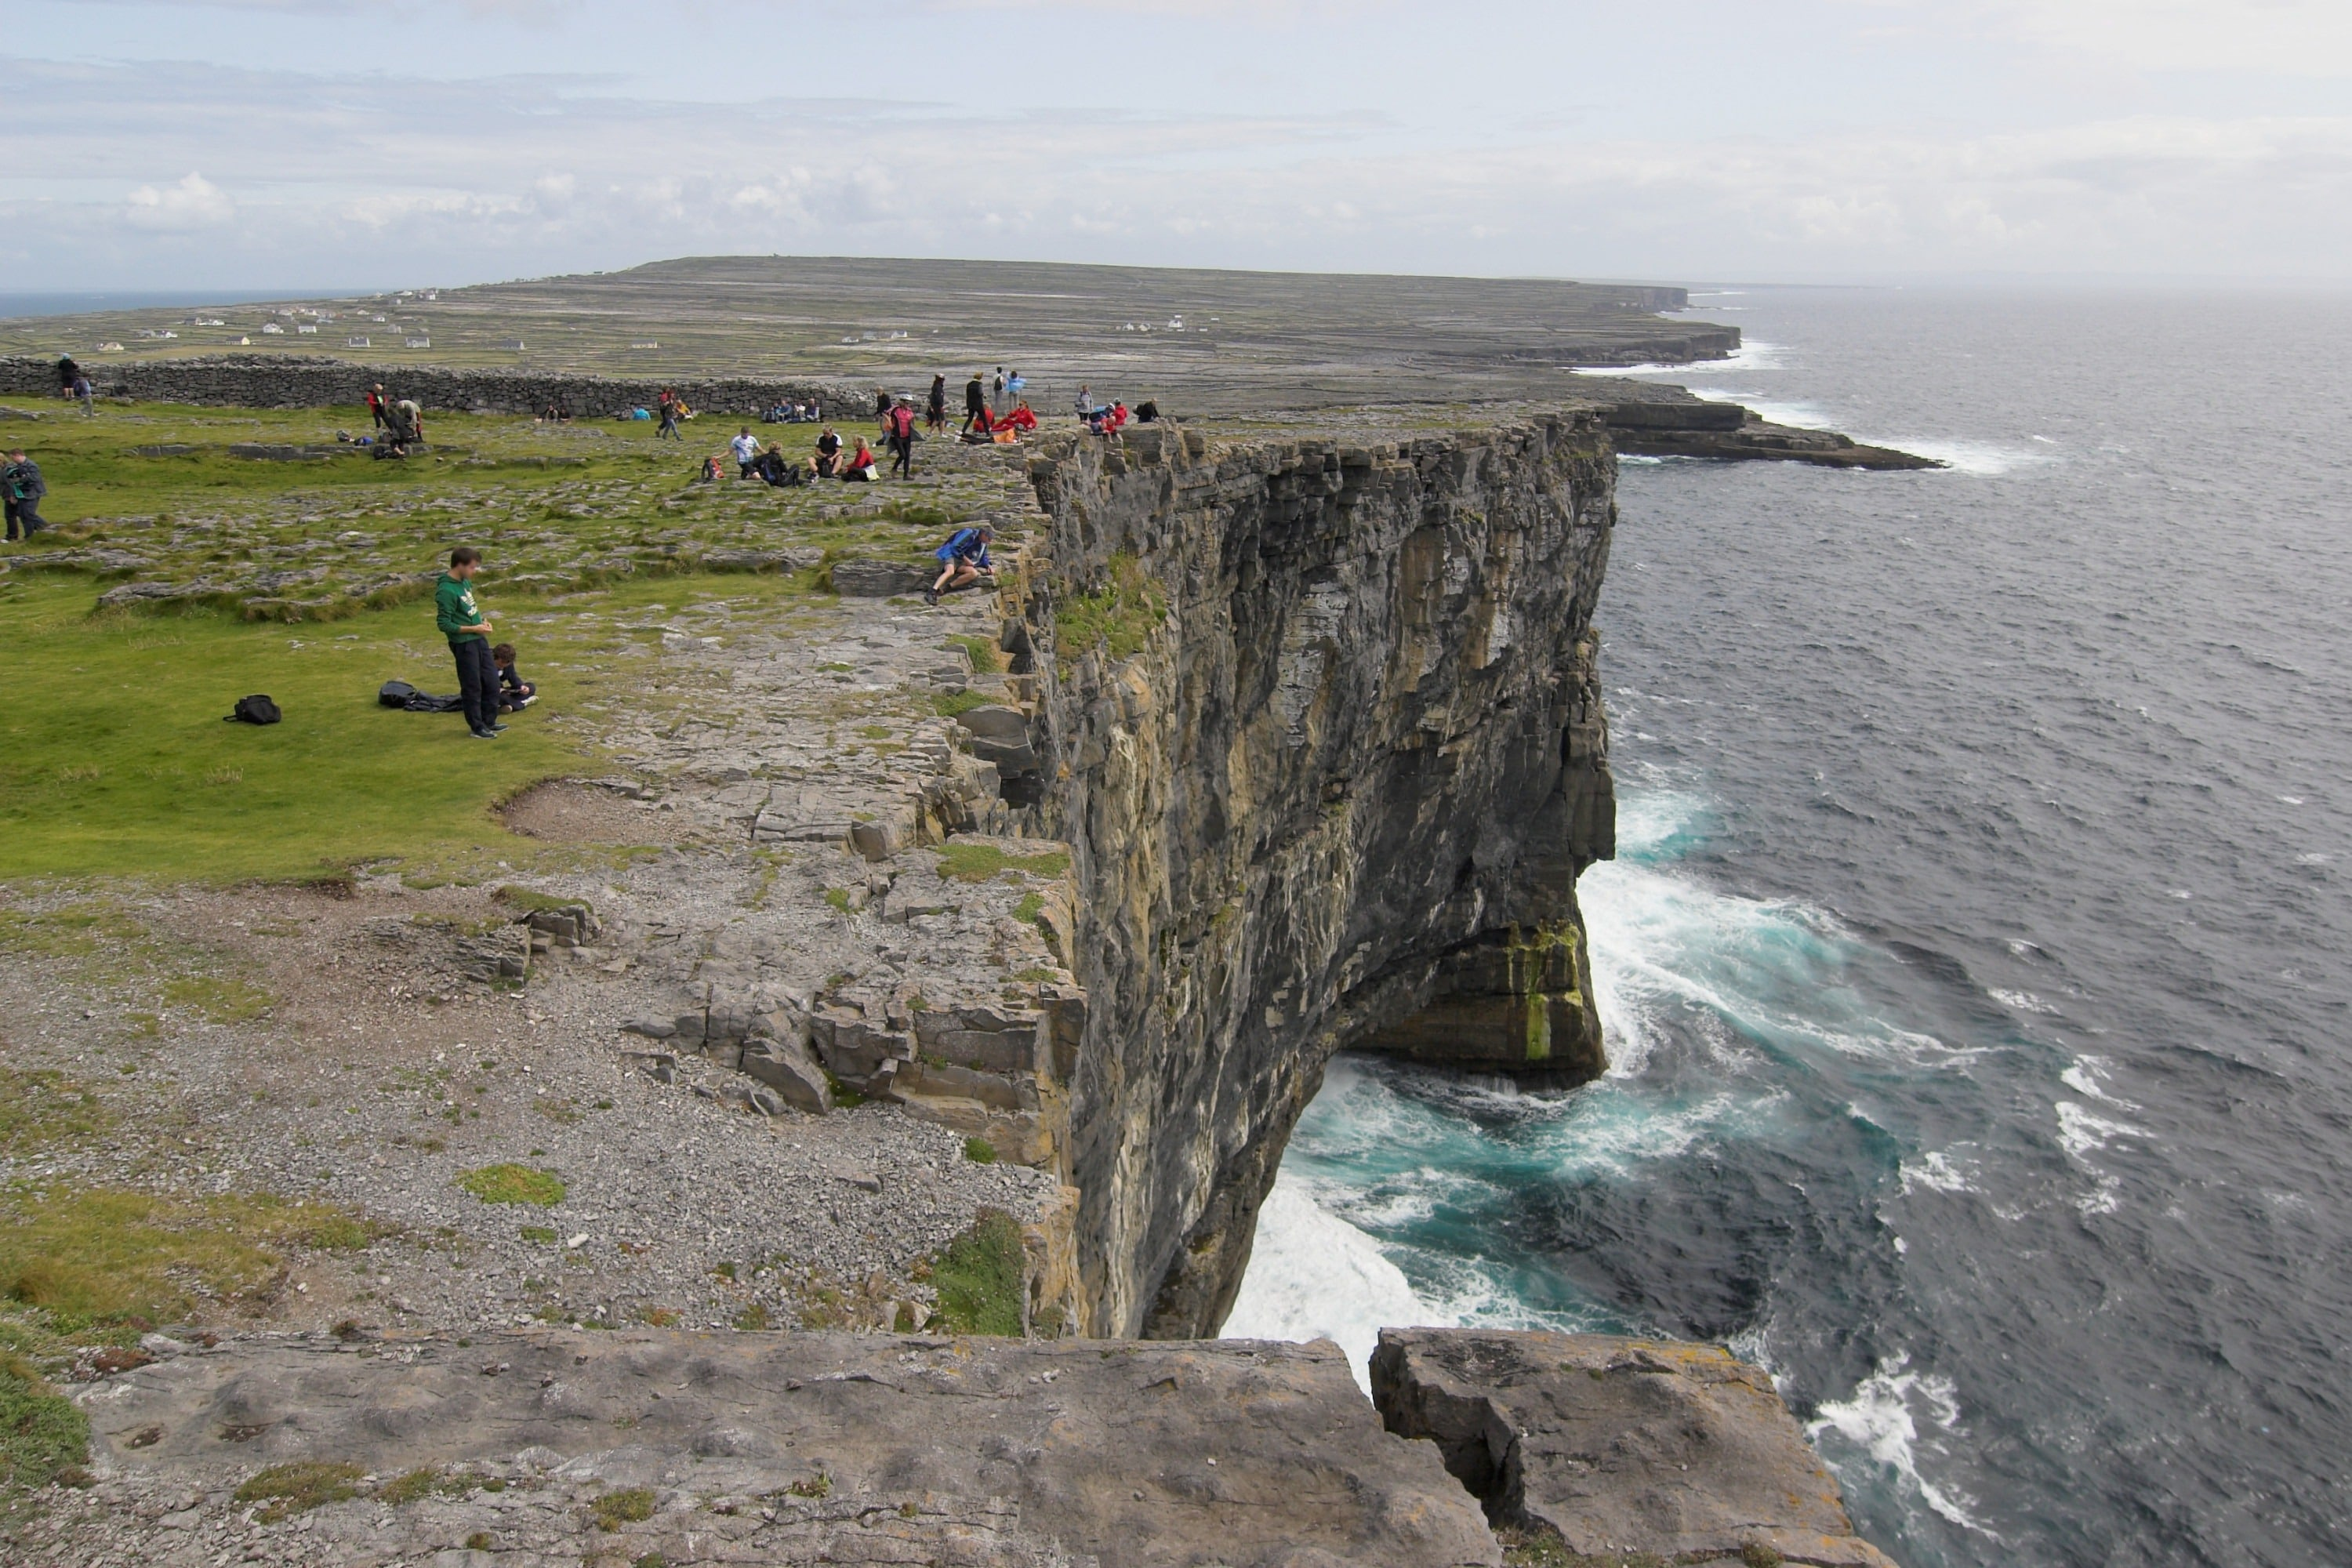 Inishmore_cliffs_at_Dun_Aengus